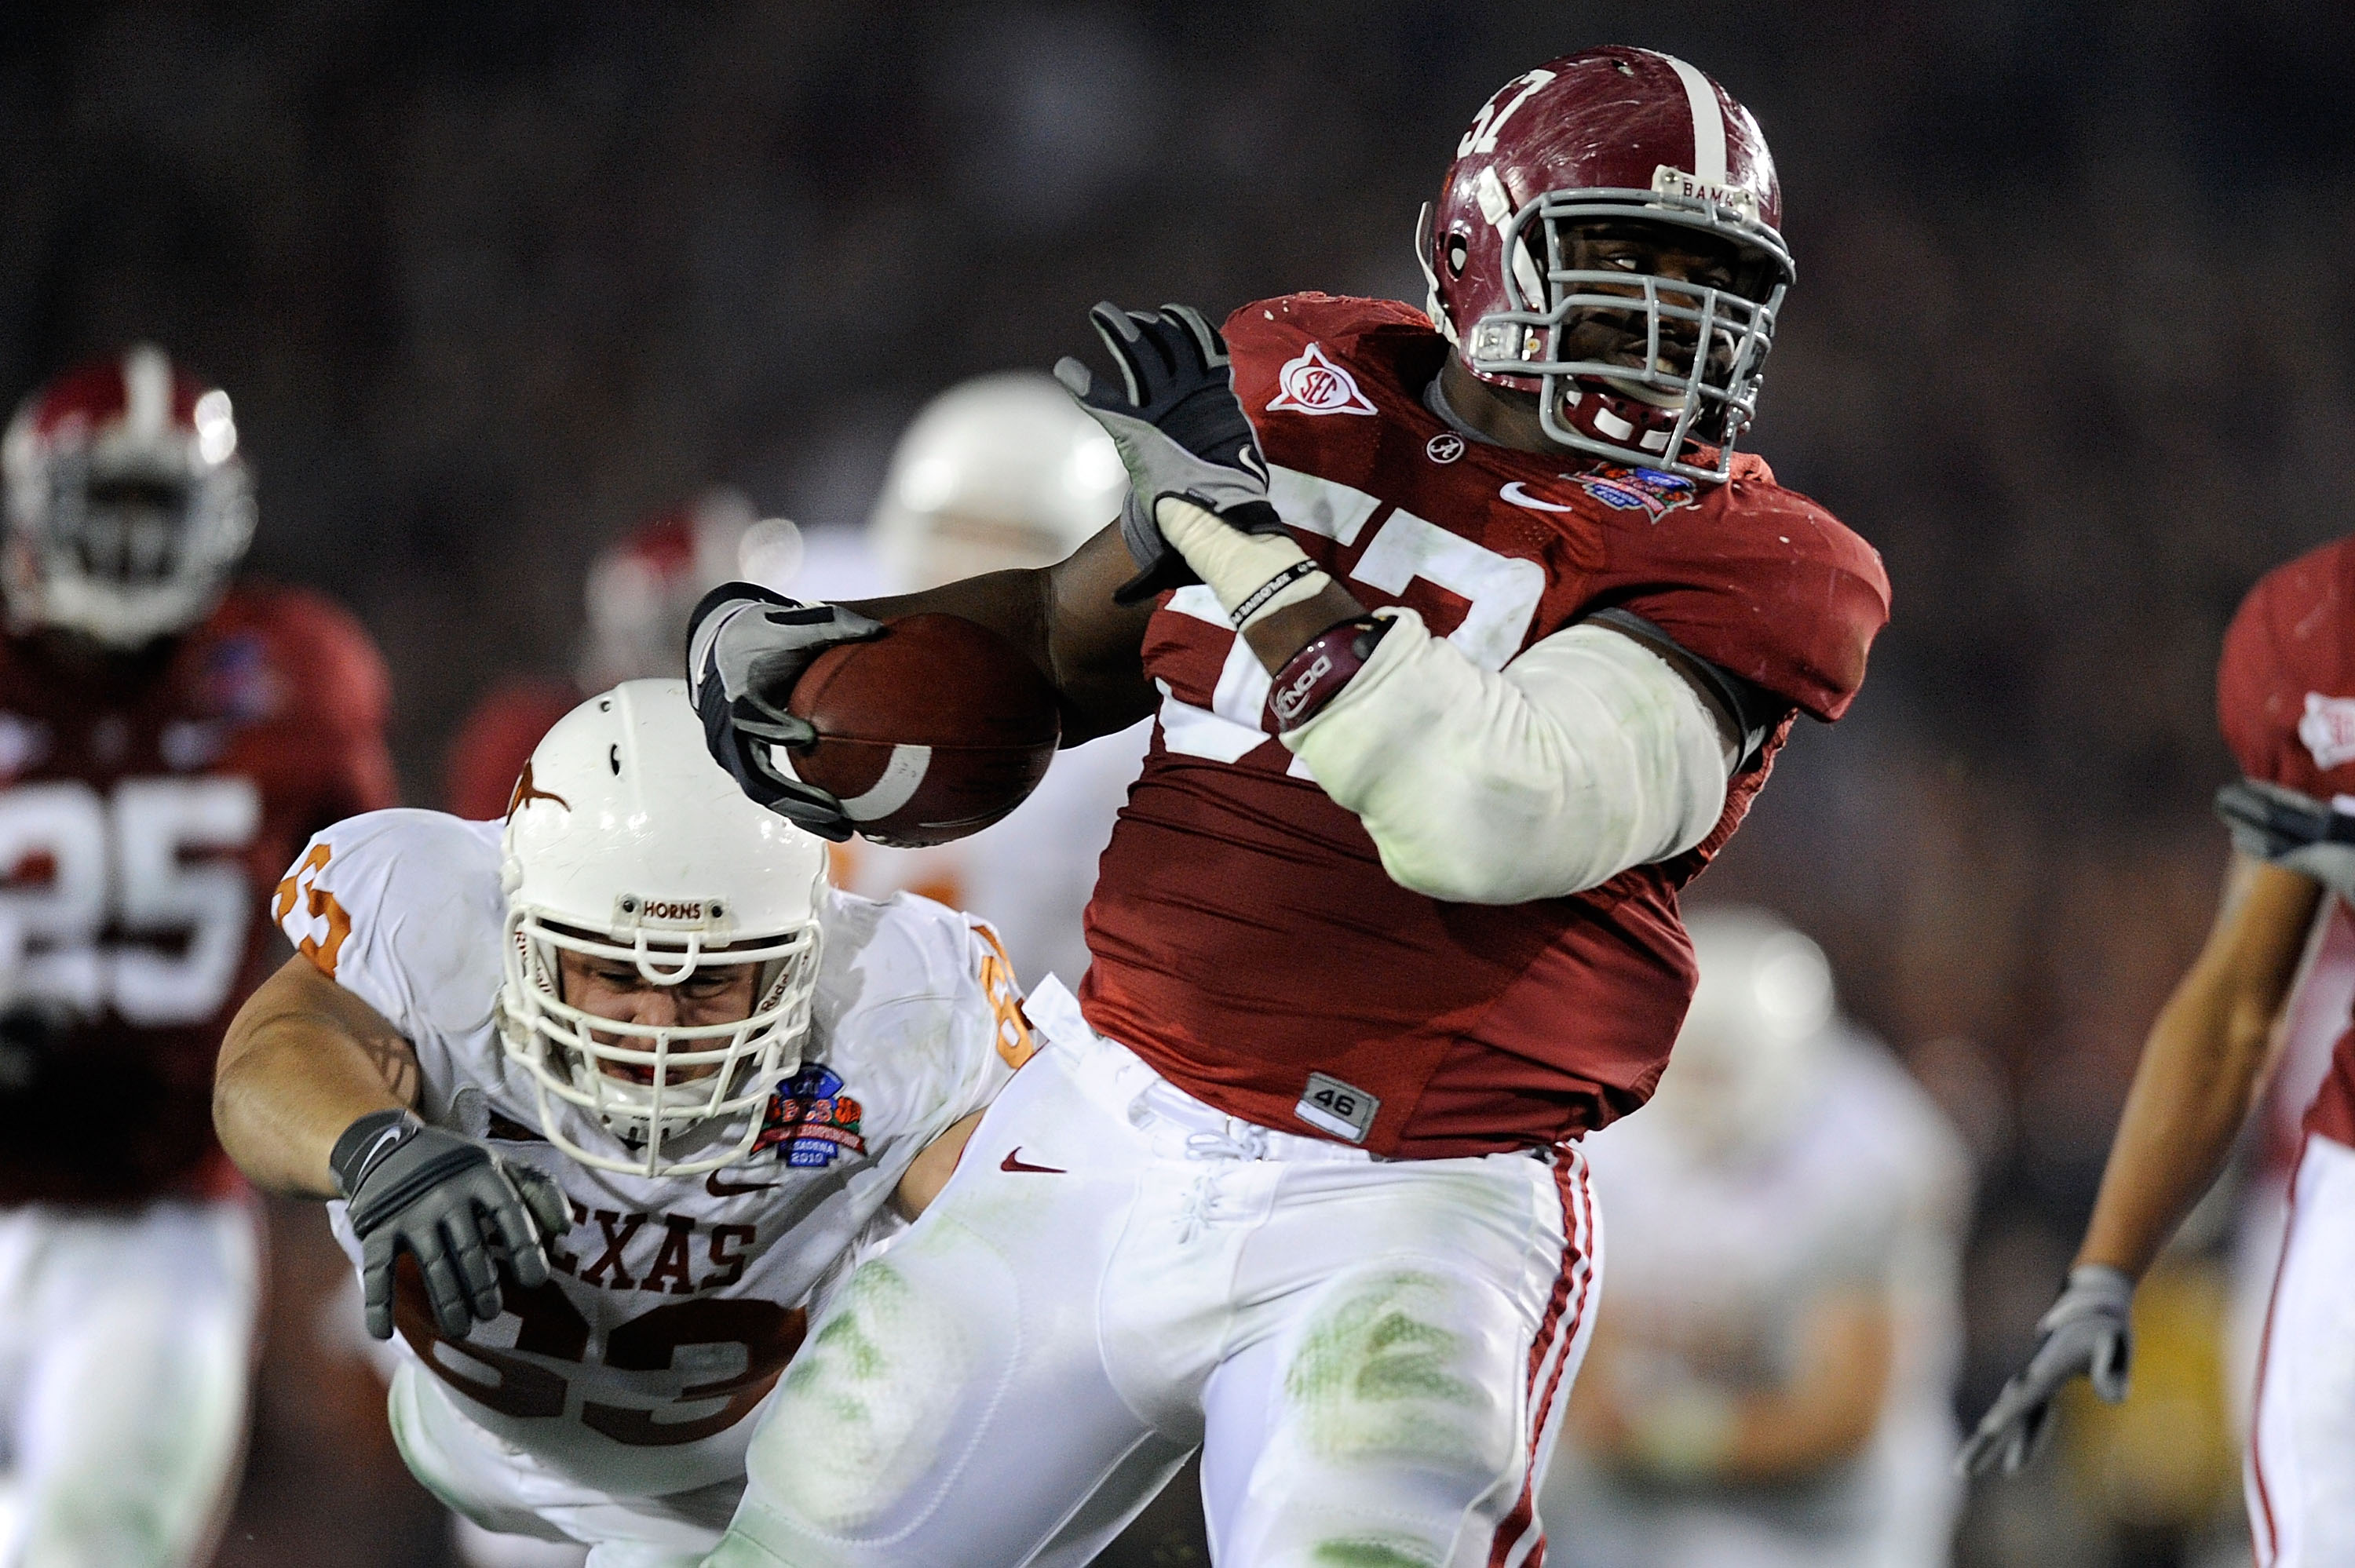 PASADENA, CA - JANUARY 07:  Lineman Marcell Dareus #57 of the Alabama Crimson Tide runs with the ball after an interception as guard Michael Huey #63 of the Texas Longhorns attempts to tackle during the second quarter of the Citi BCS National Championship